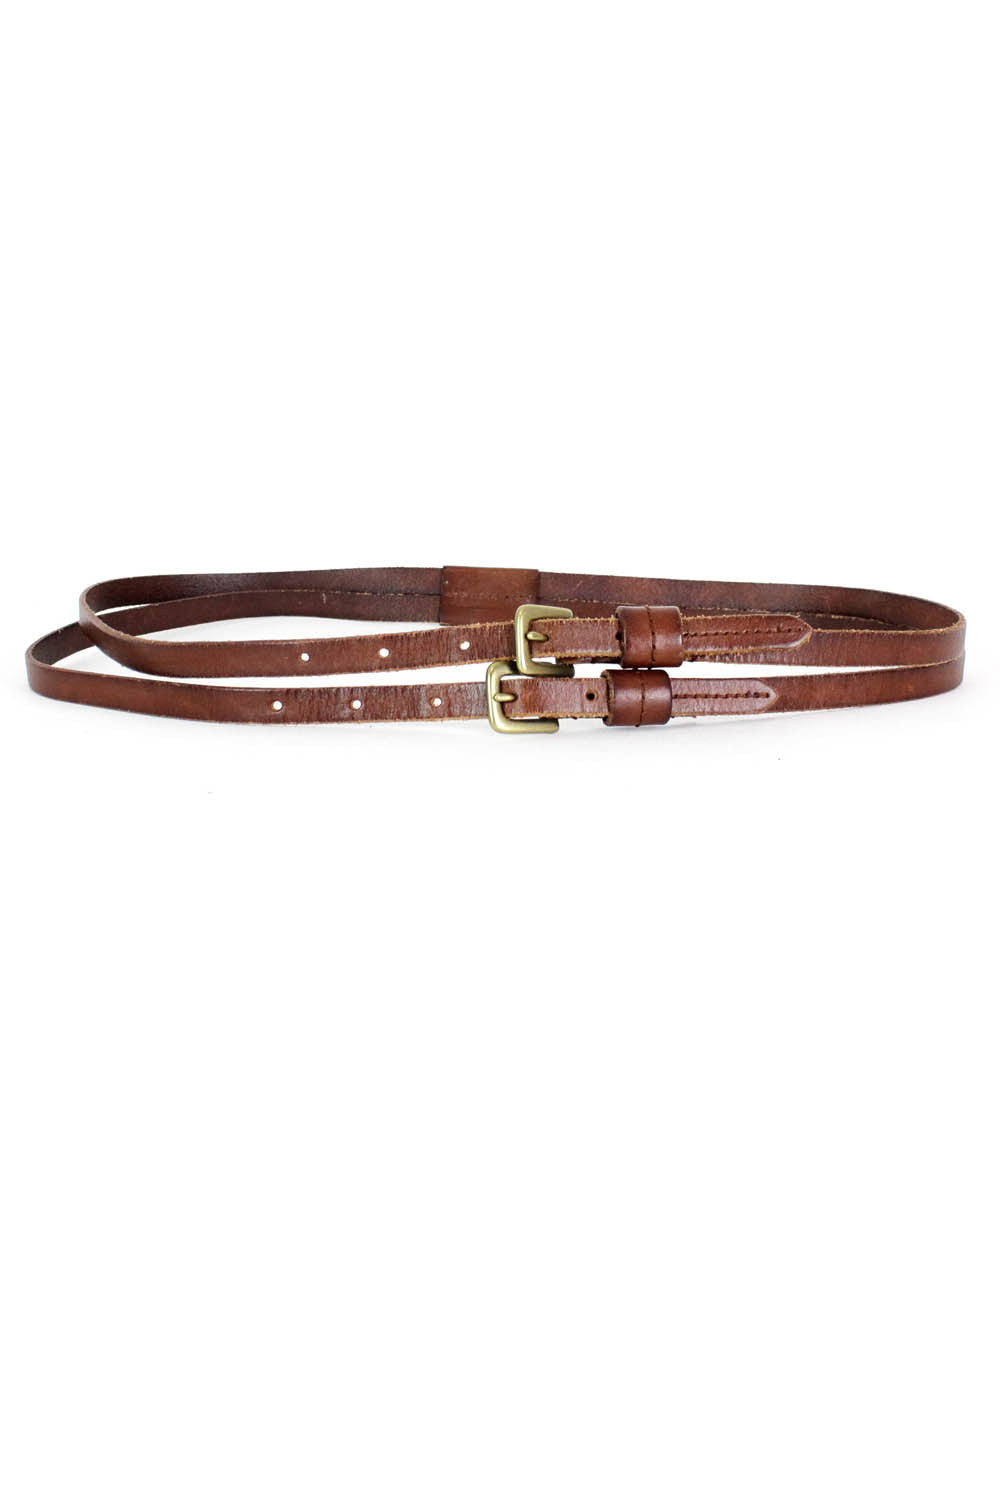 Linea Pelle Double Skinny Belt